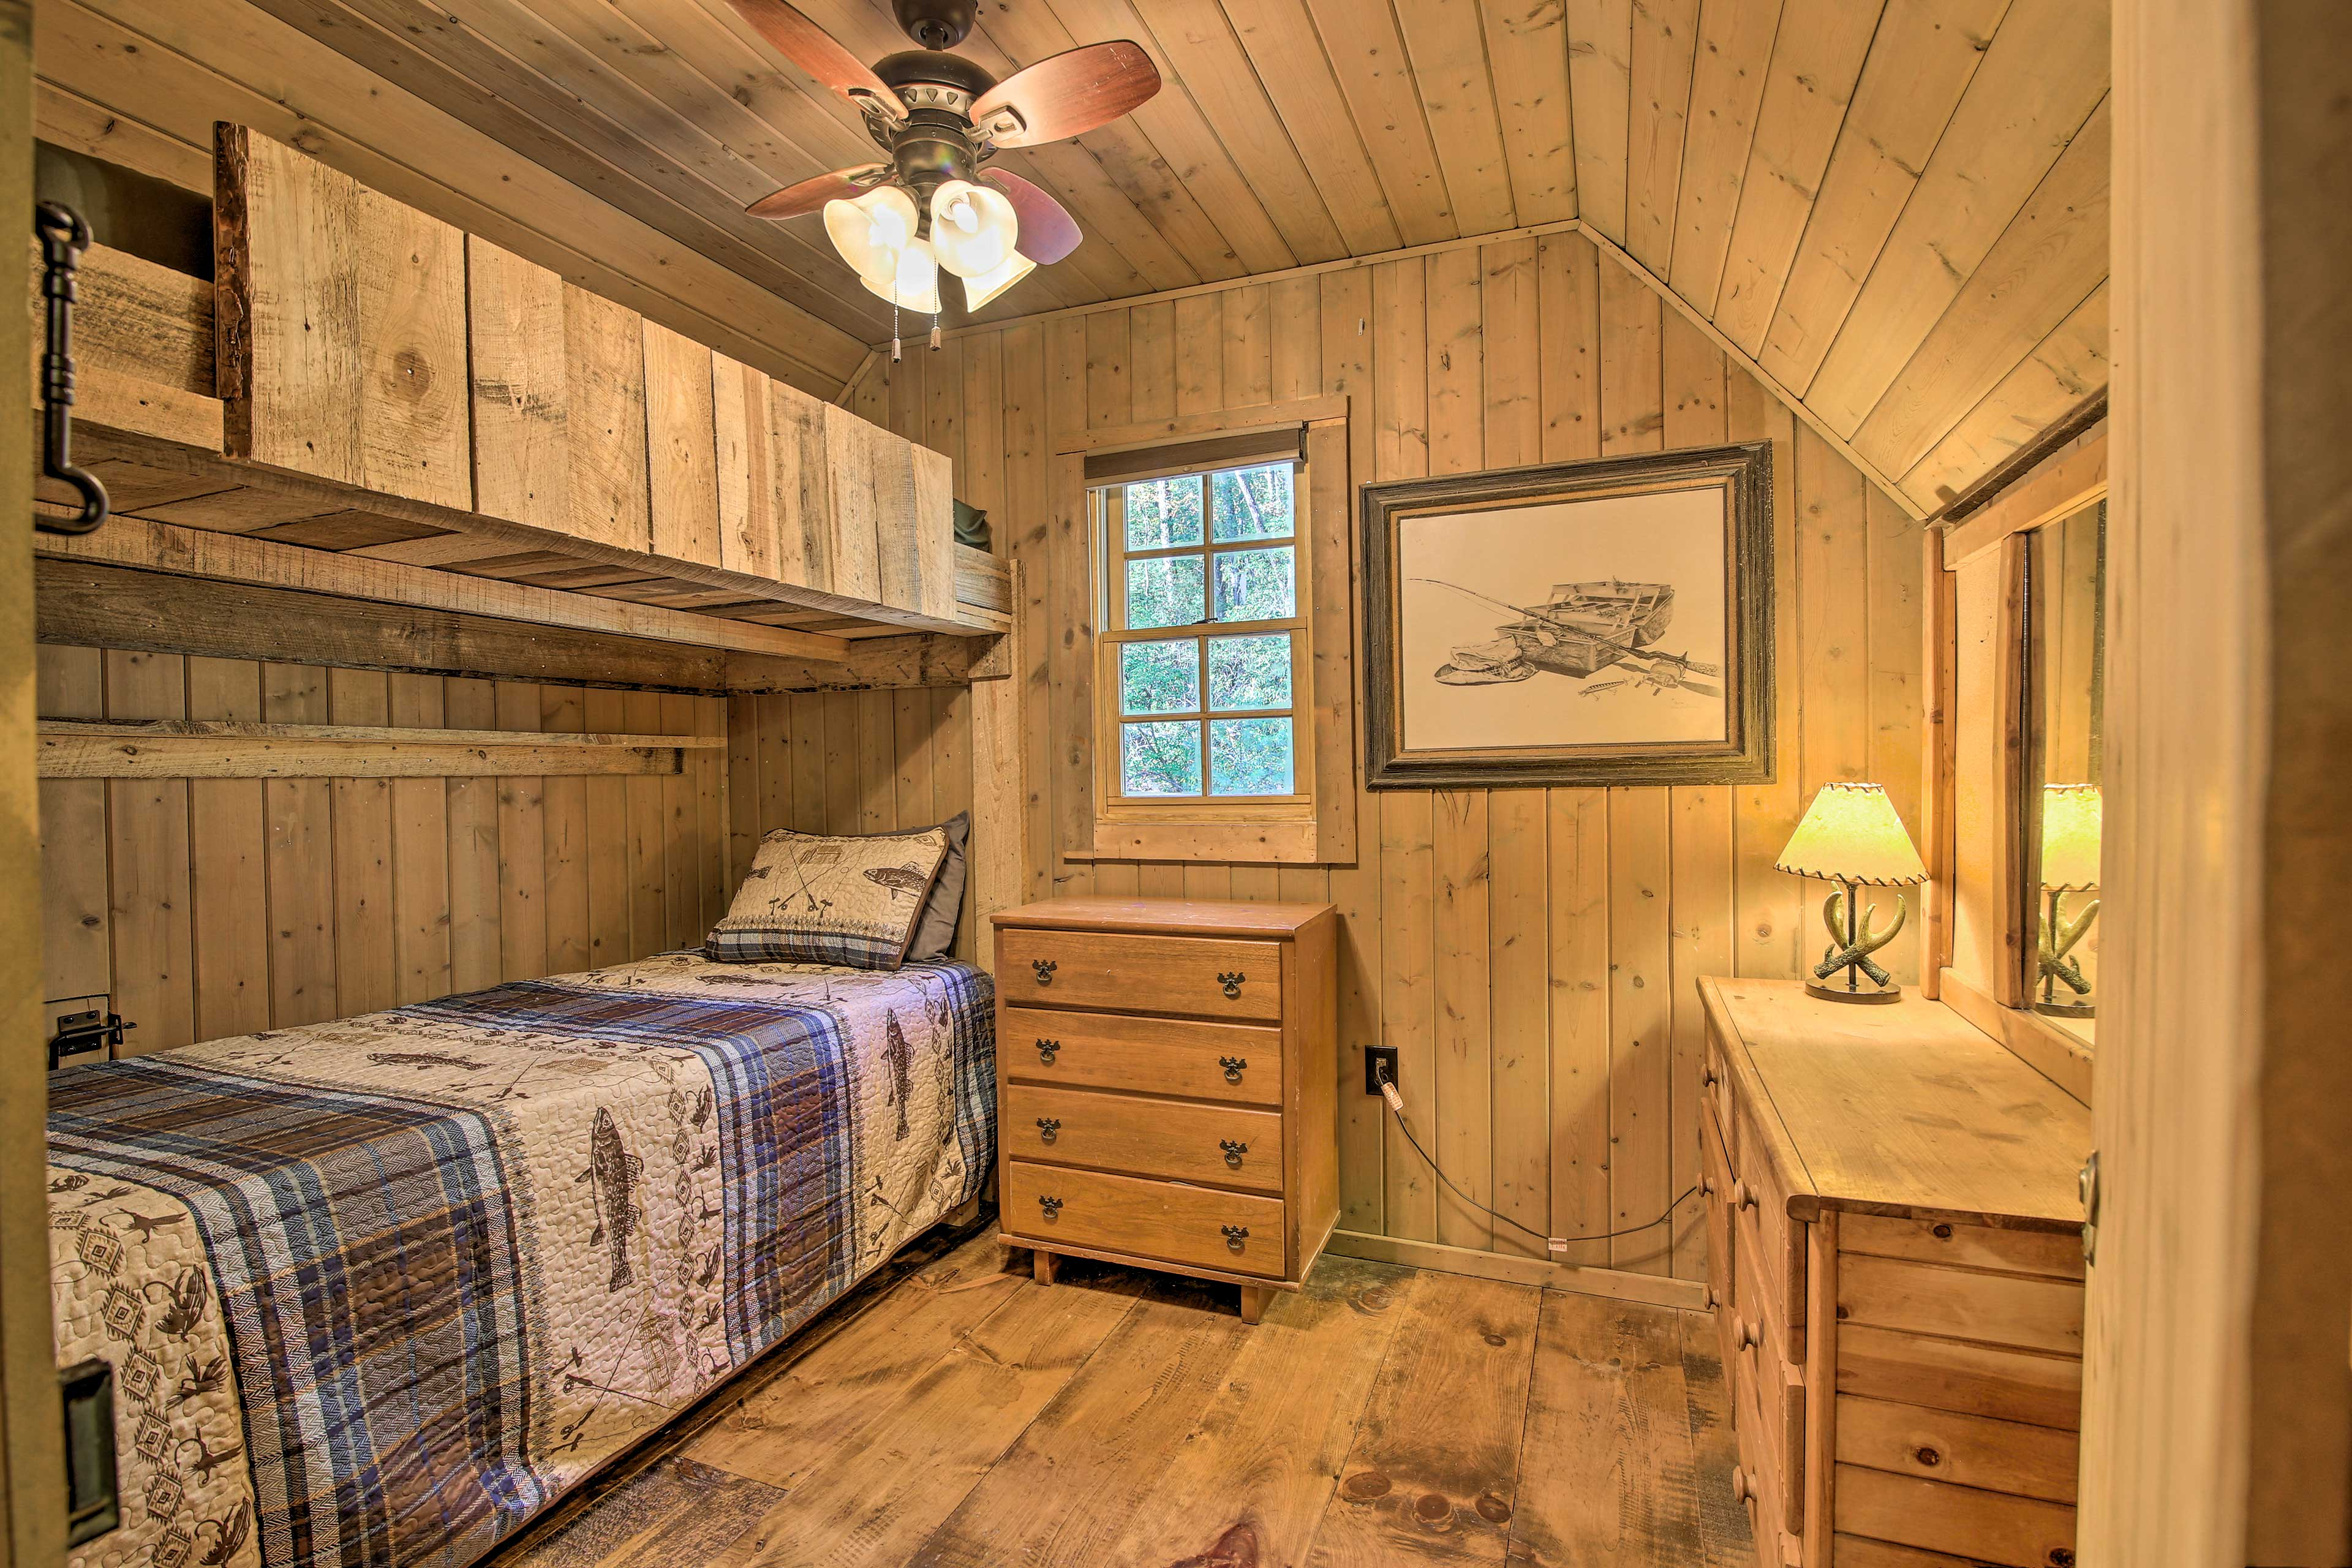 The second bedroom has twin bunk beds and 2 dressers.